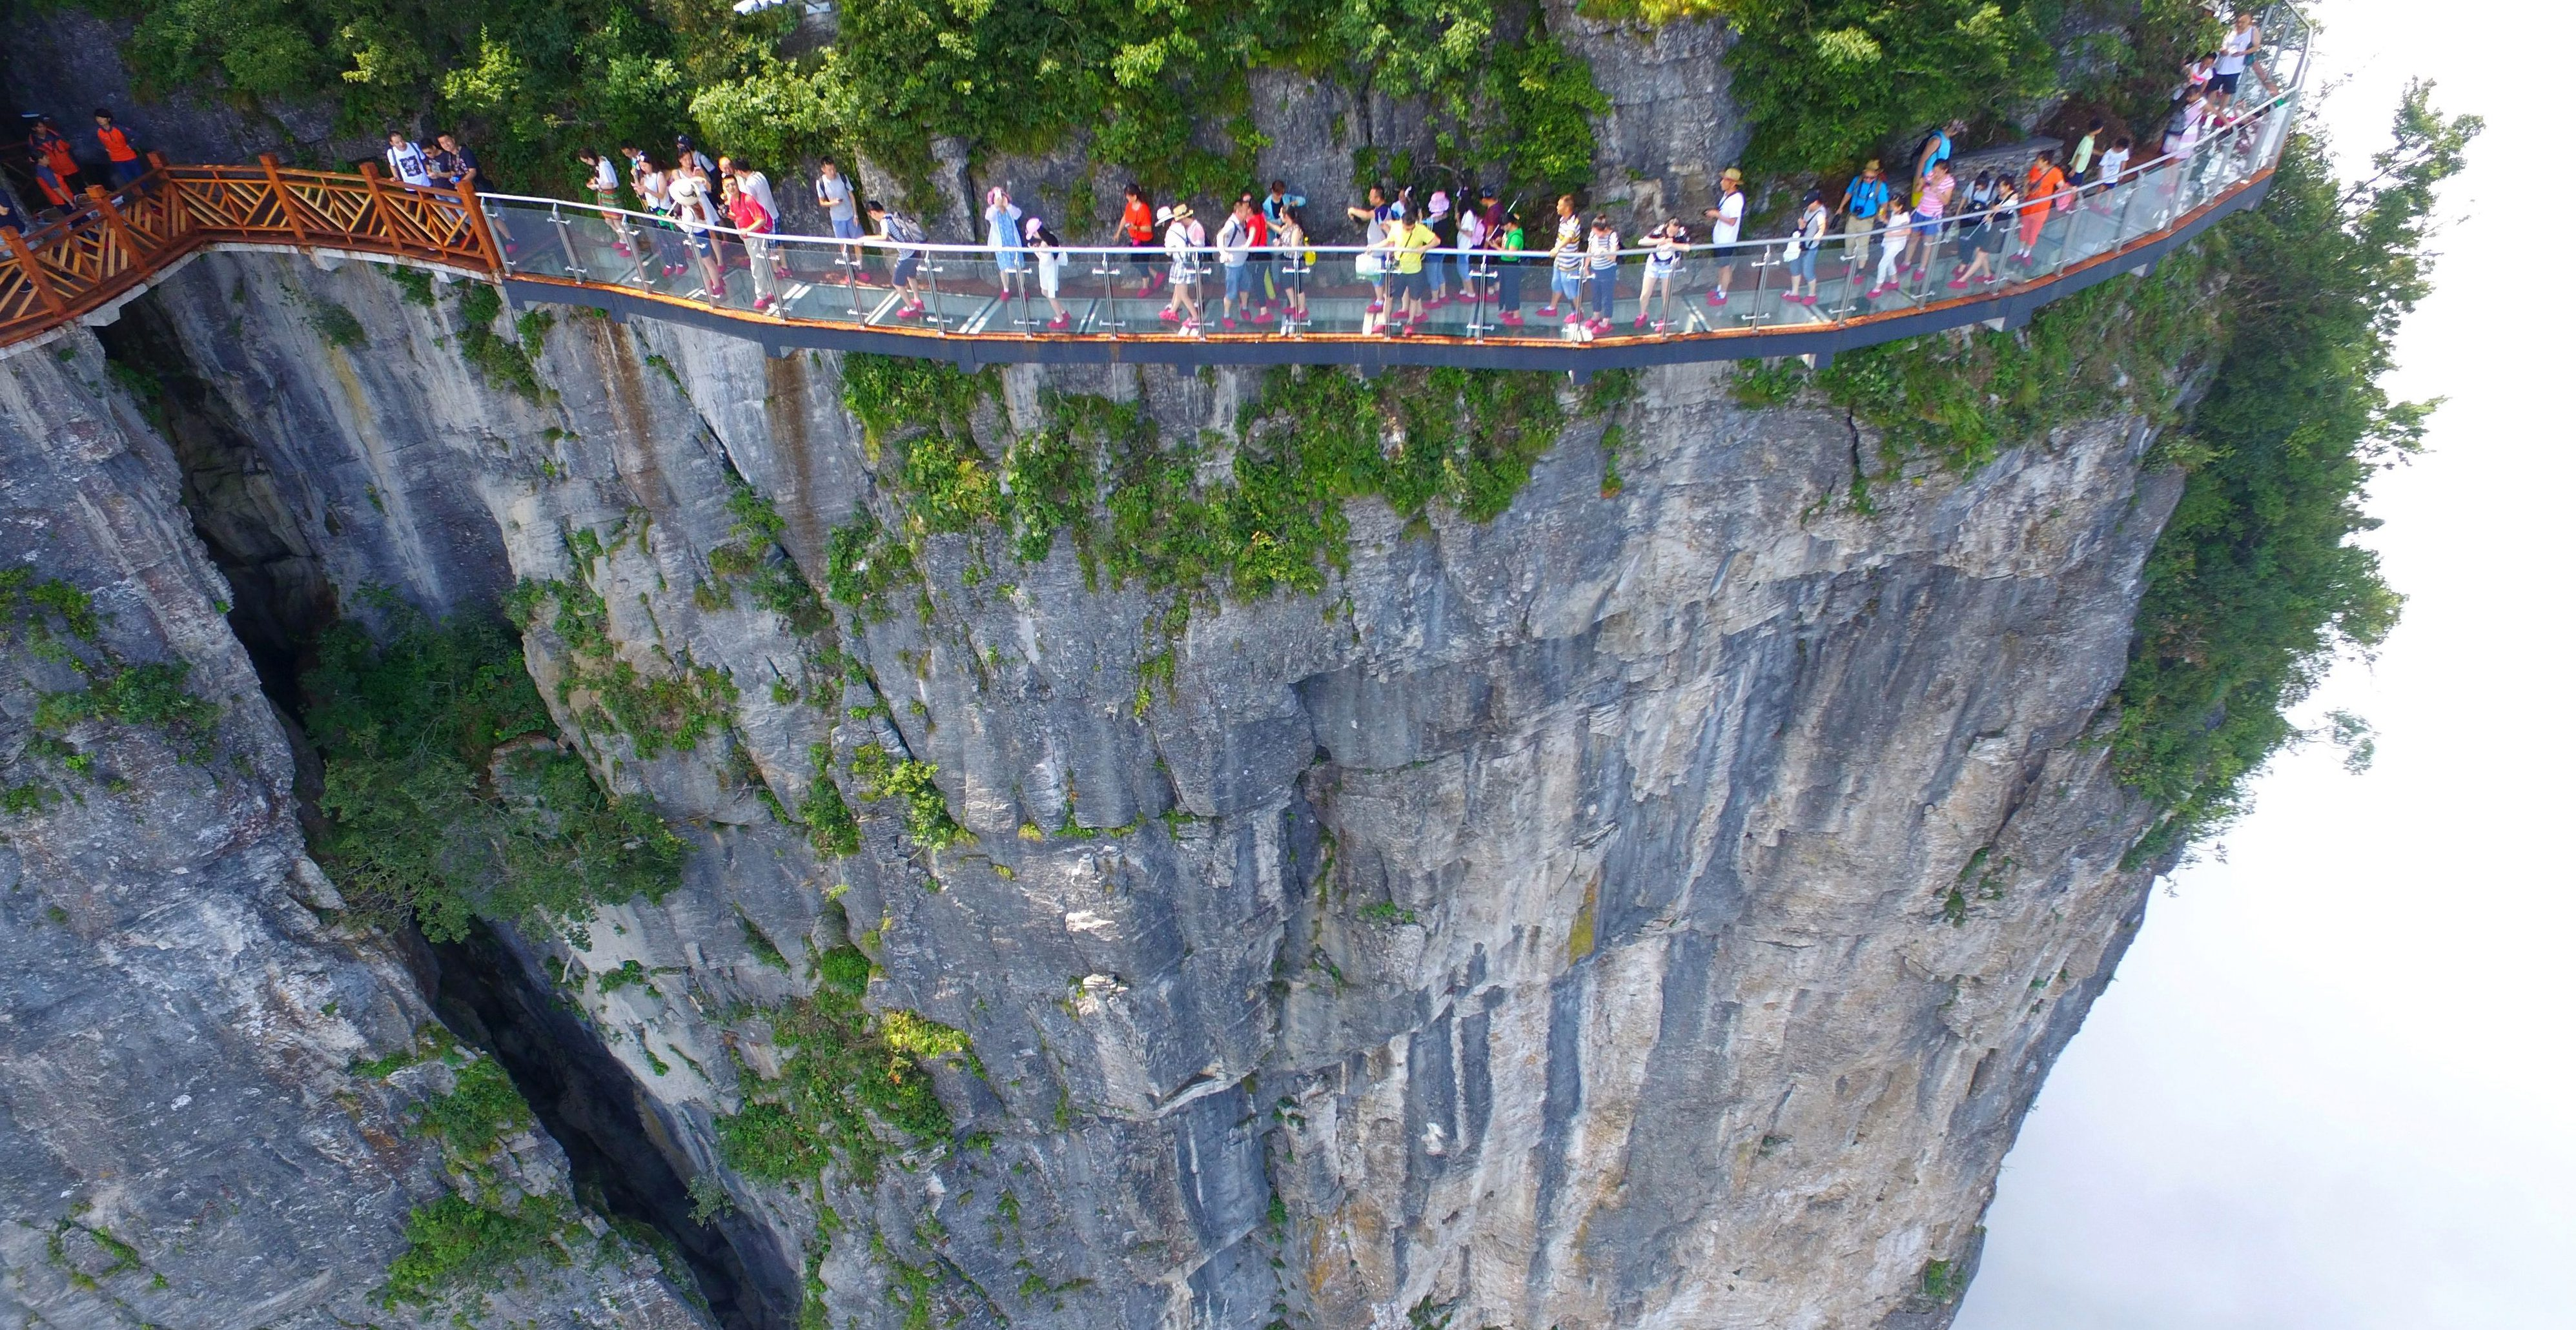 China's glass skywalk opens to public